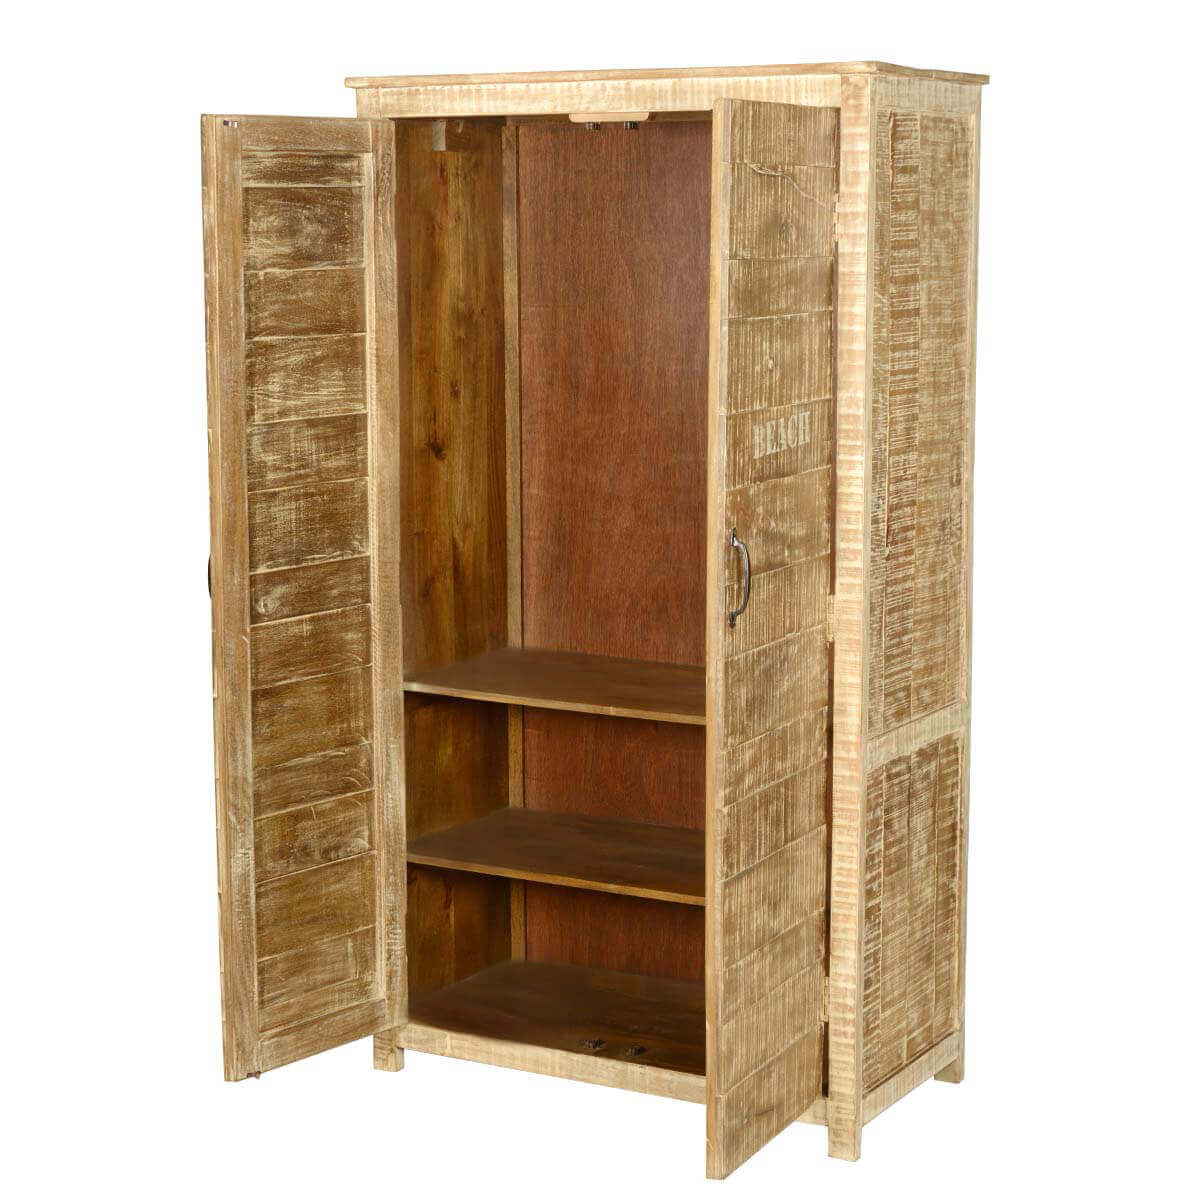 New orleans rustic solid wood bedroom armoire wardrobe